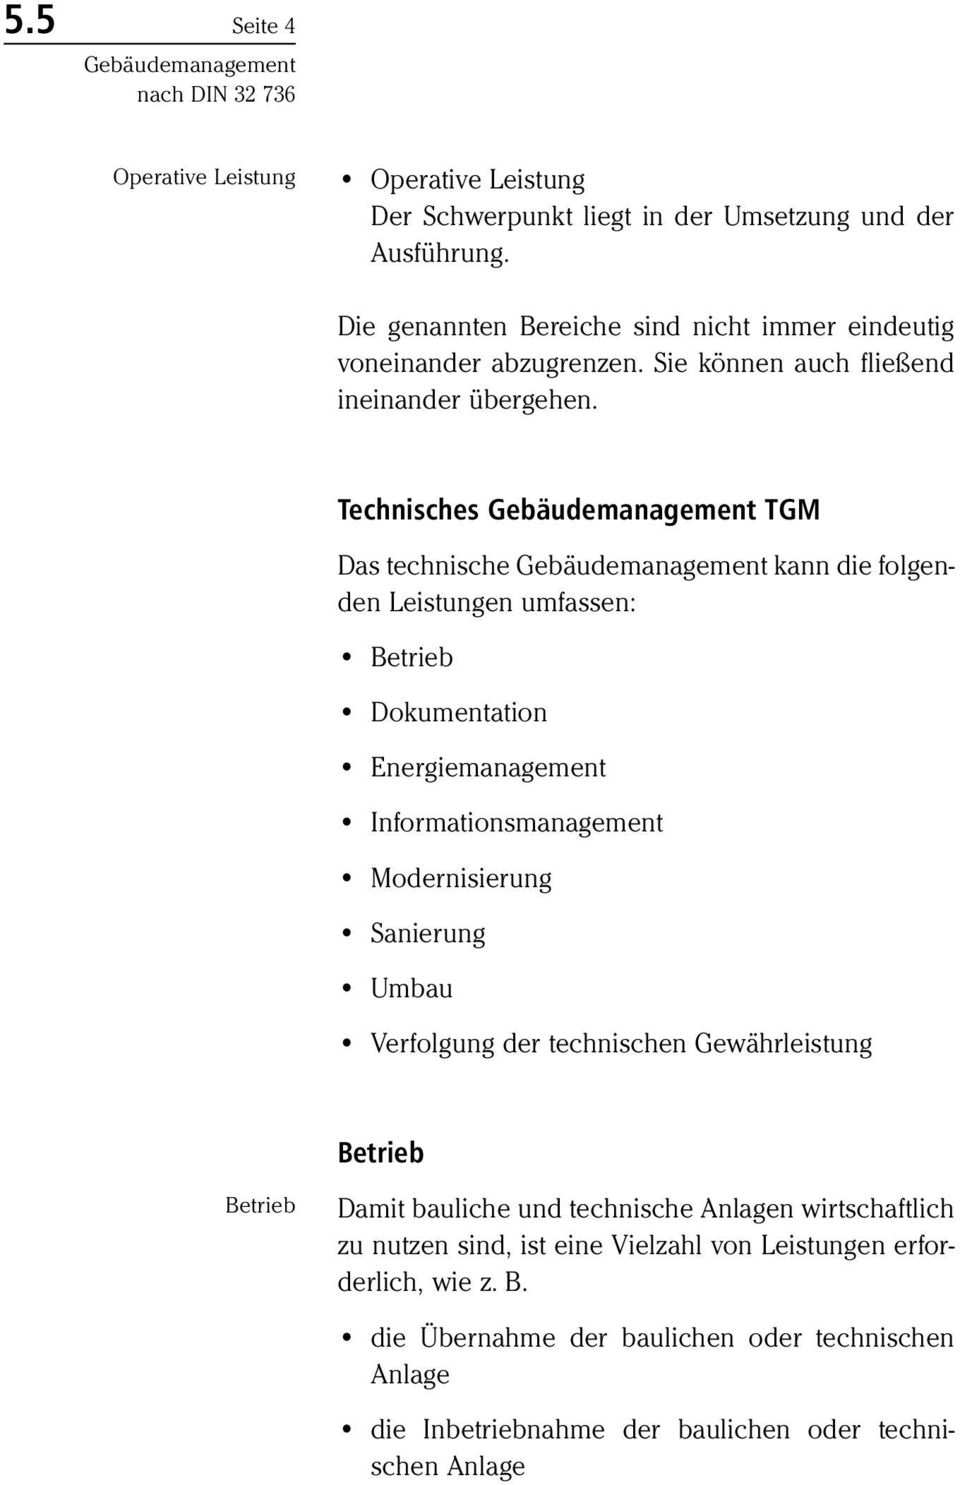 Technisches TGM Das technische kann die folgenden Leistungen umfassen: Betrieb Dokumentation Energiemanagement Informationsmanagement Modernisierung Sanierung Umbau